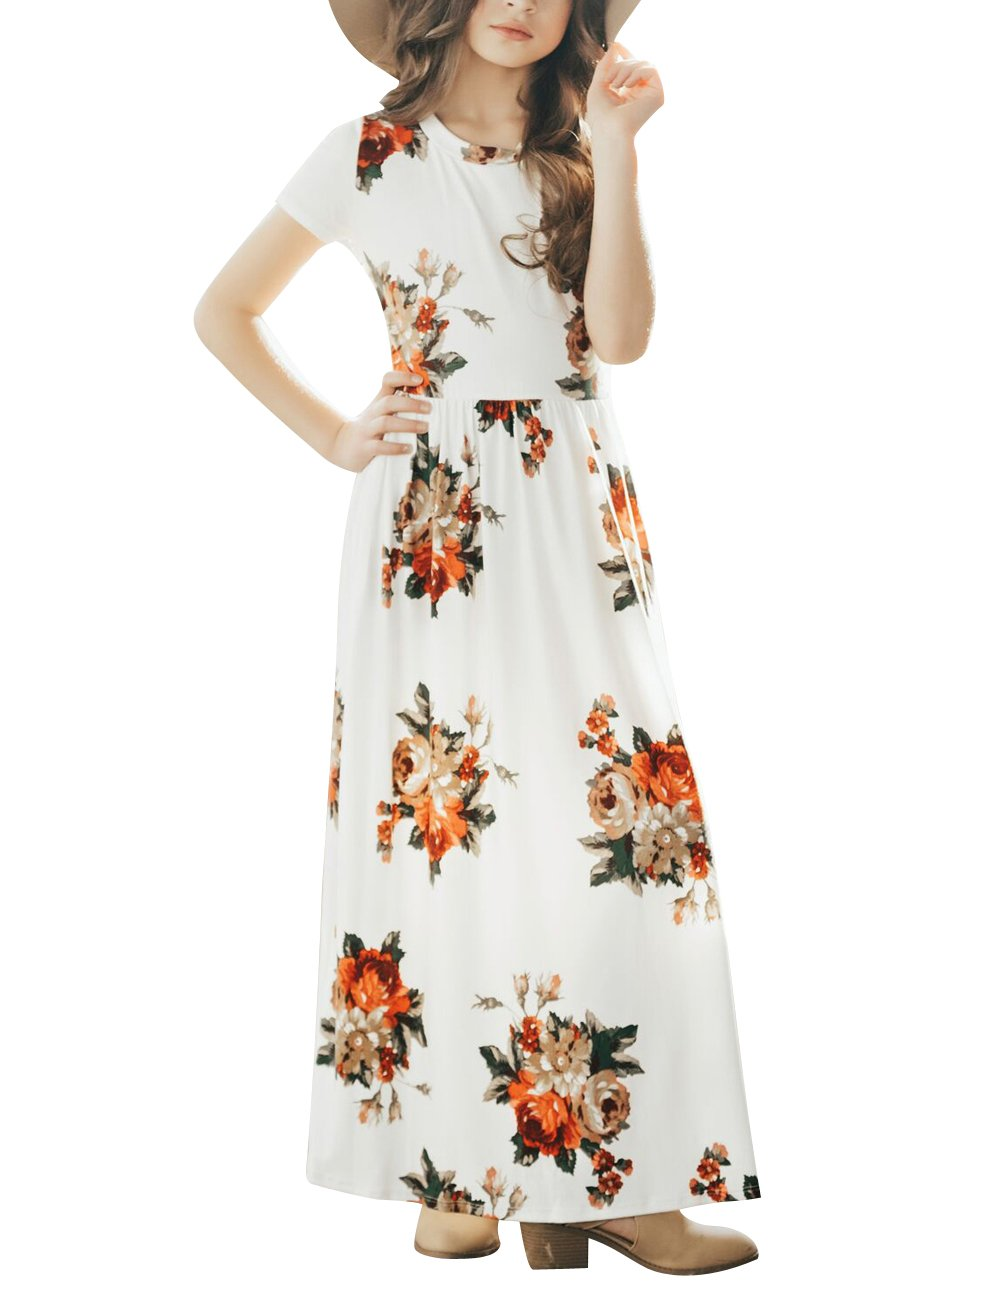 MEROKEETY Girl's Floral Short Sleeve Long Dress Summer Maxi Dress with Pockets by MEROKEETY (Image #1)